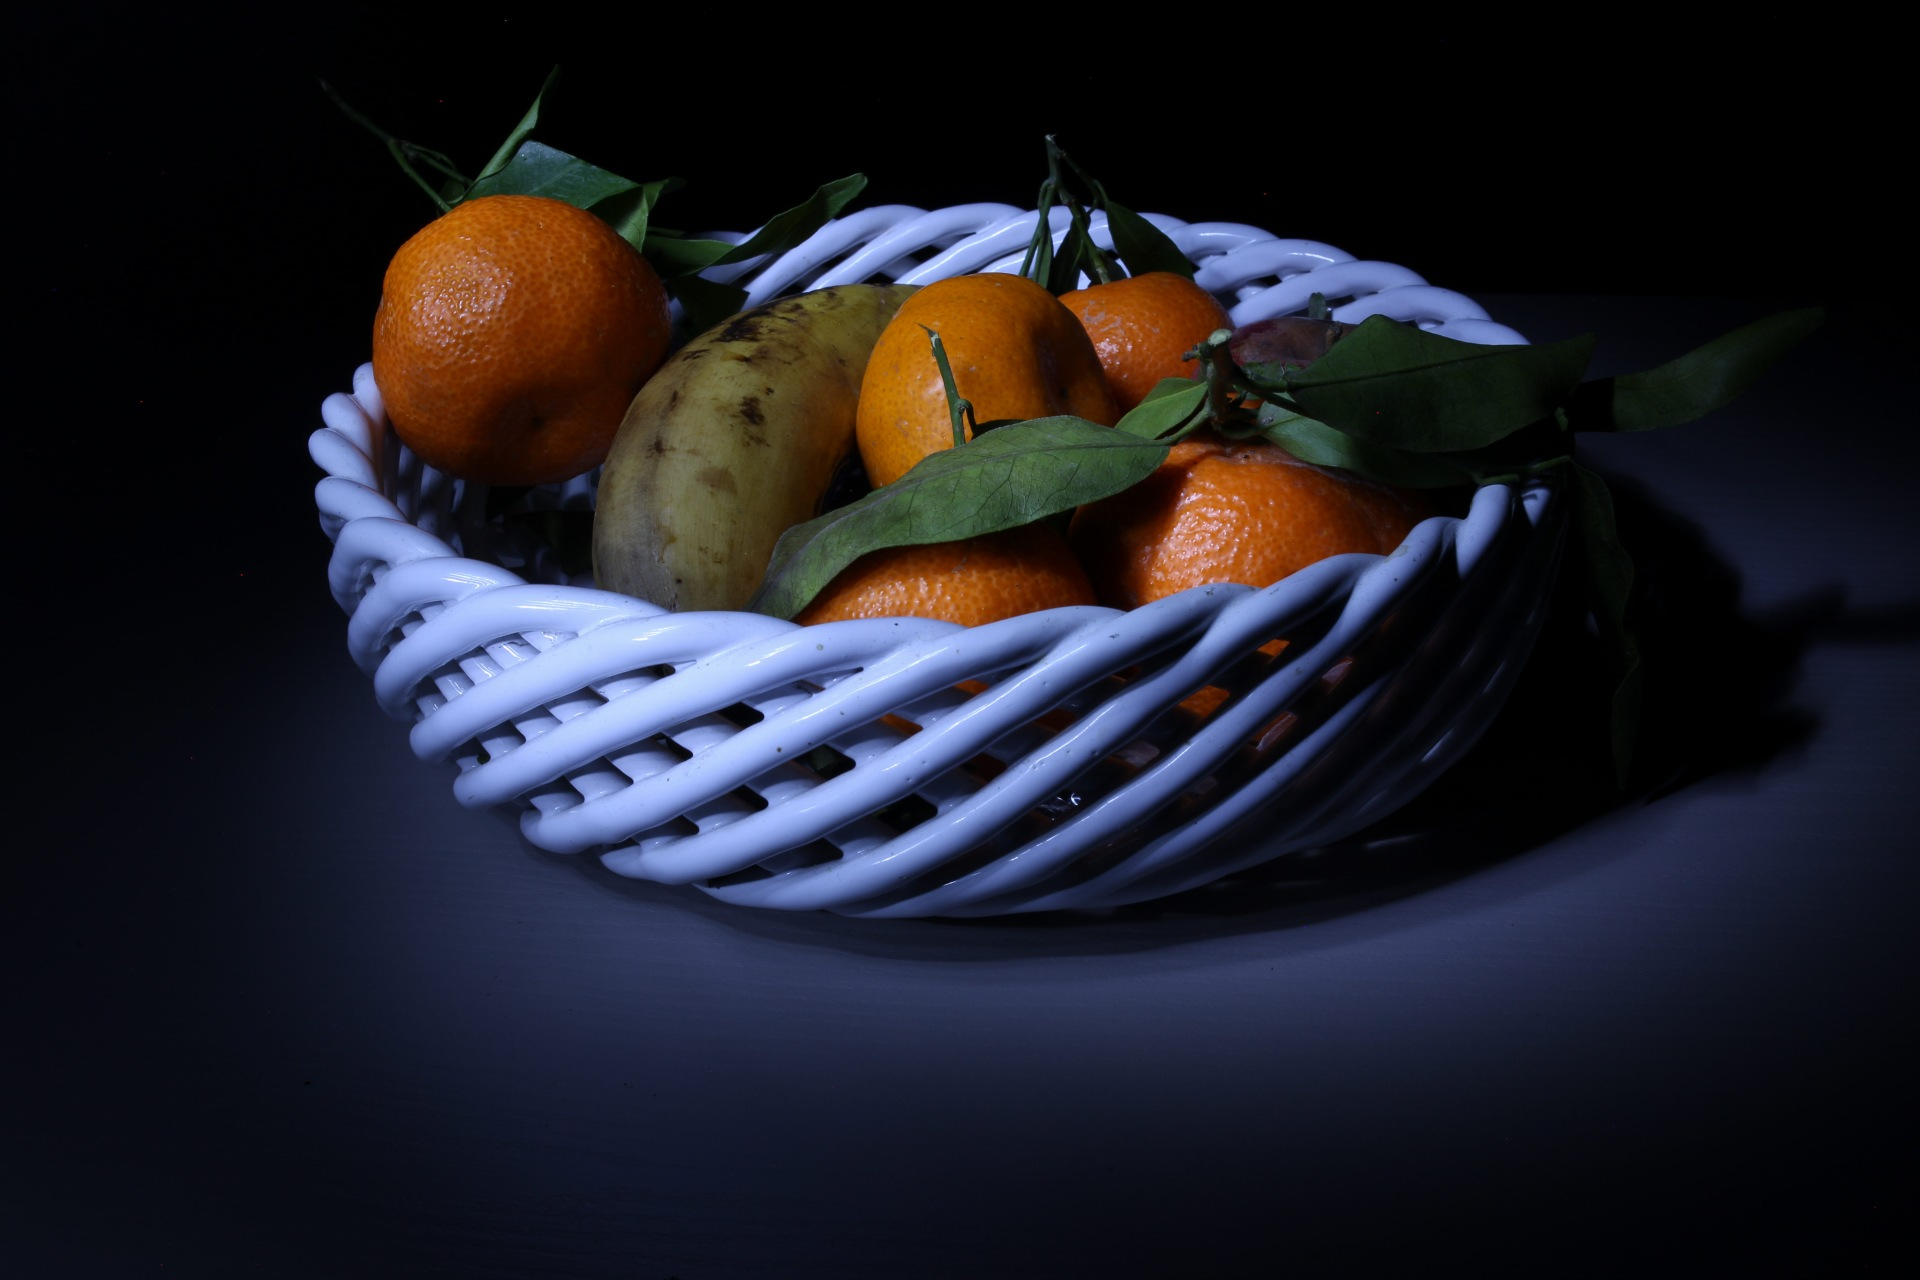 The latest clementines .......